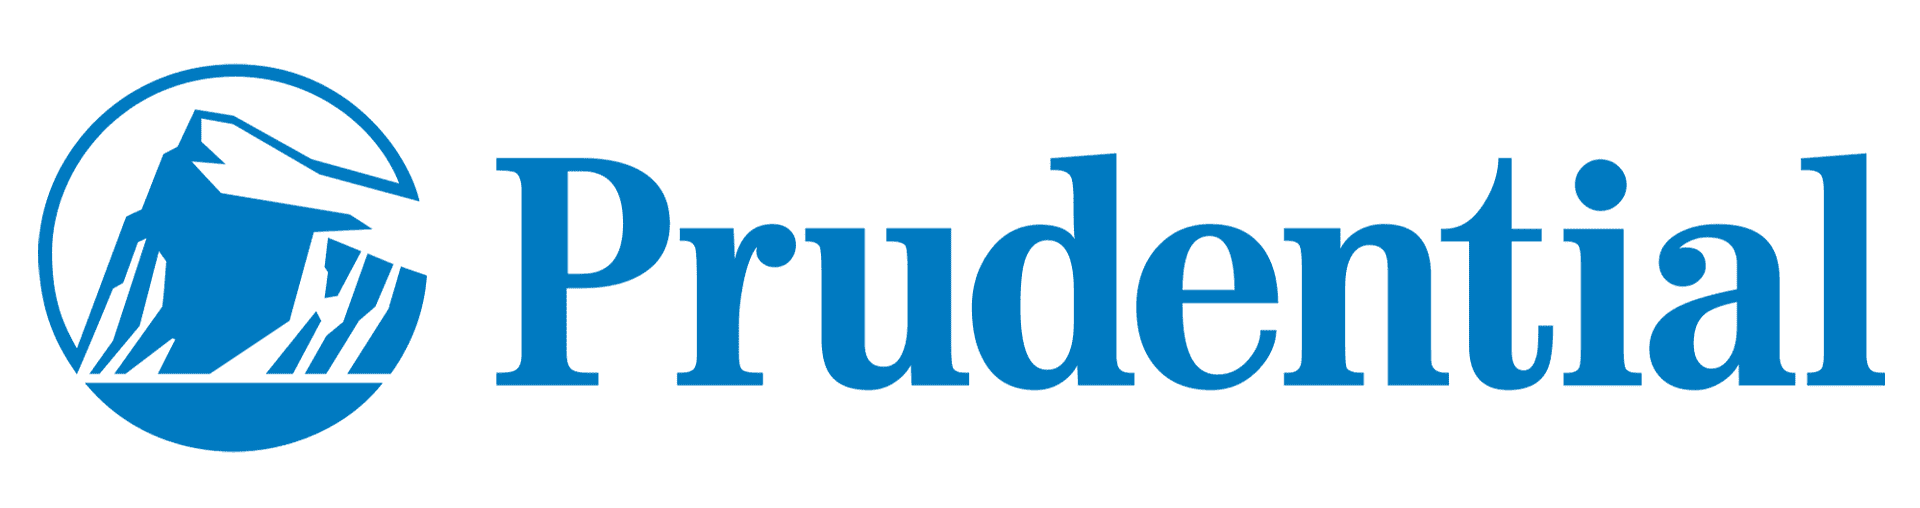 Prudential-Financial-Logo-2.png